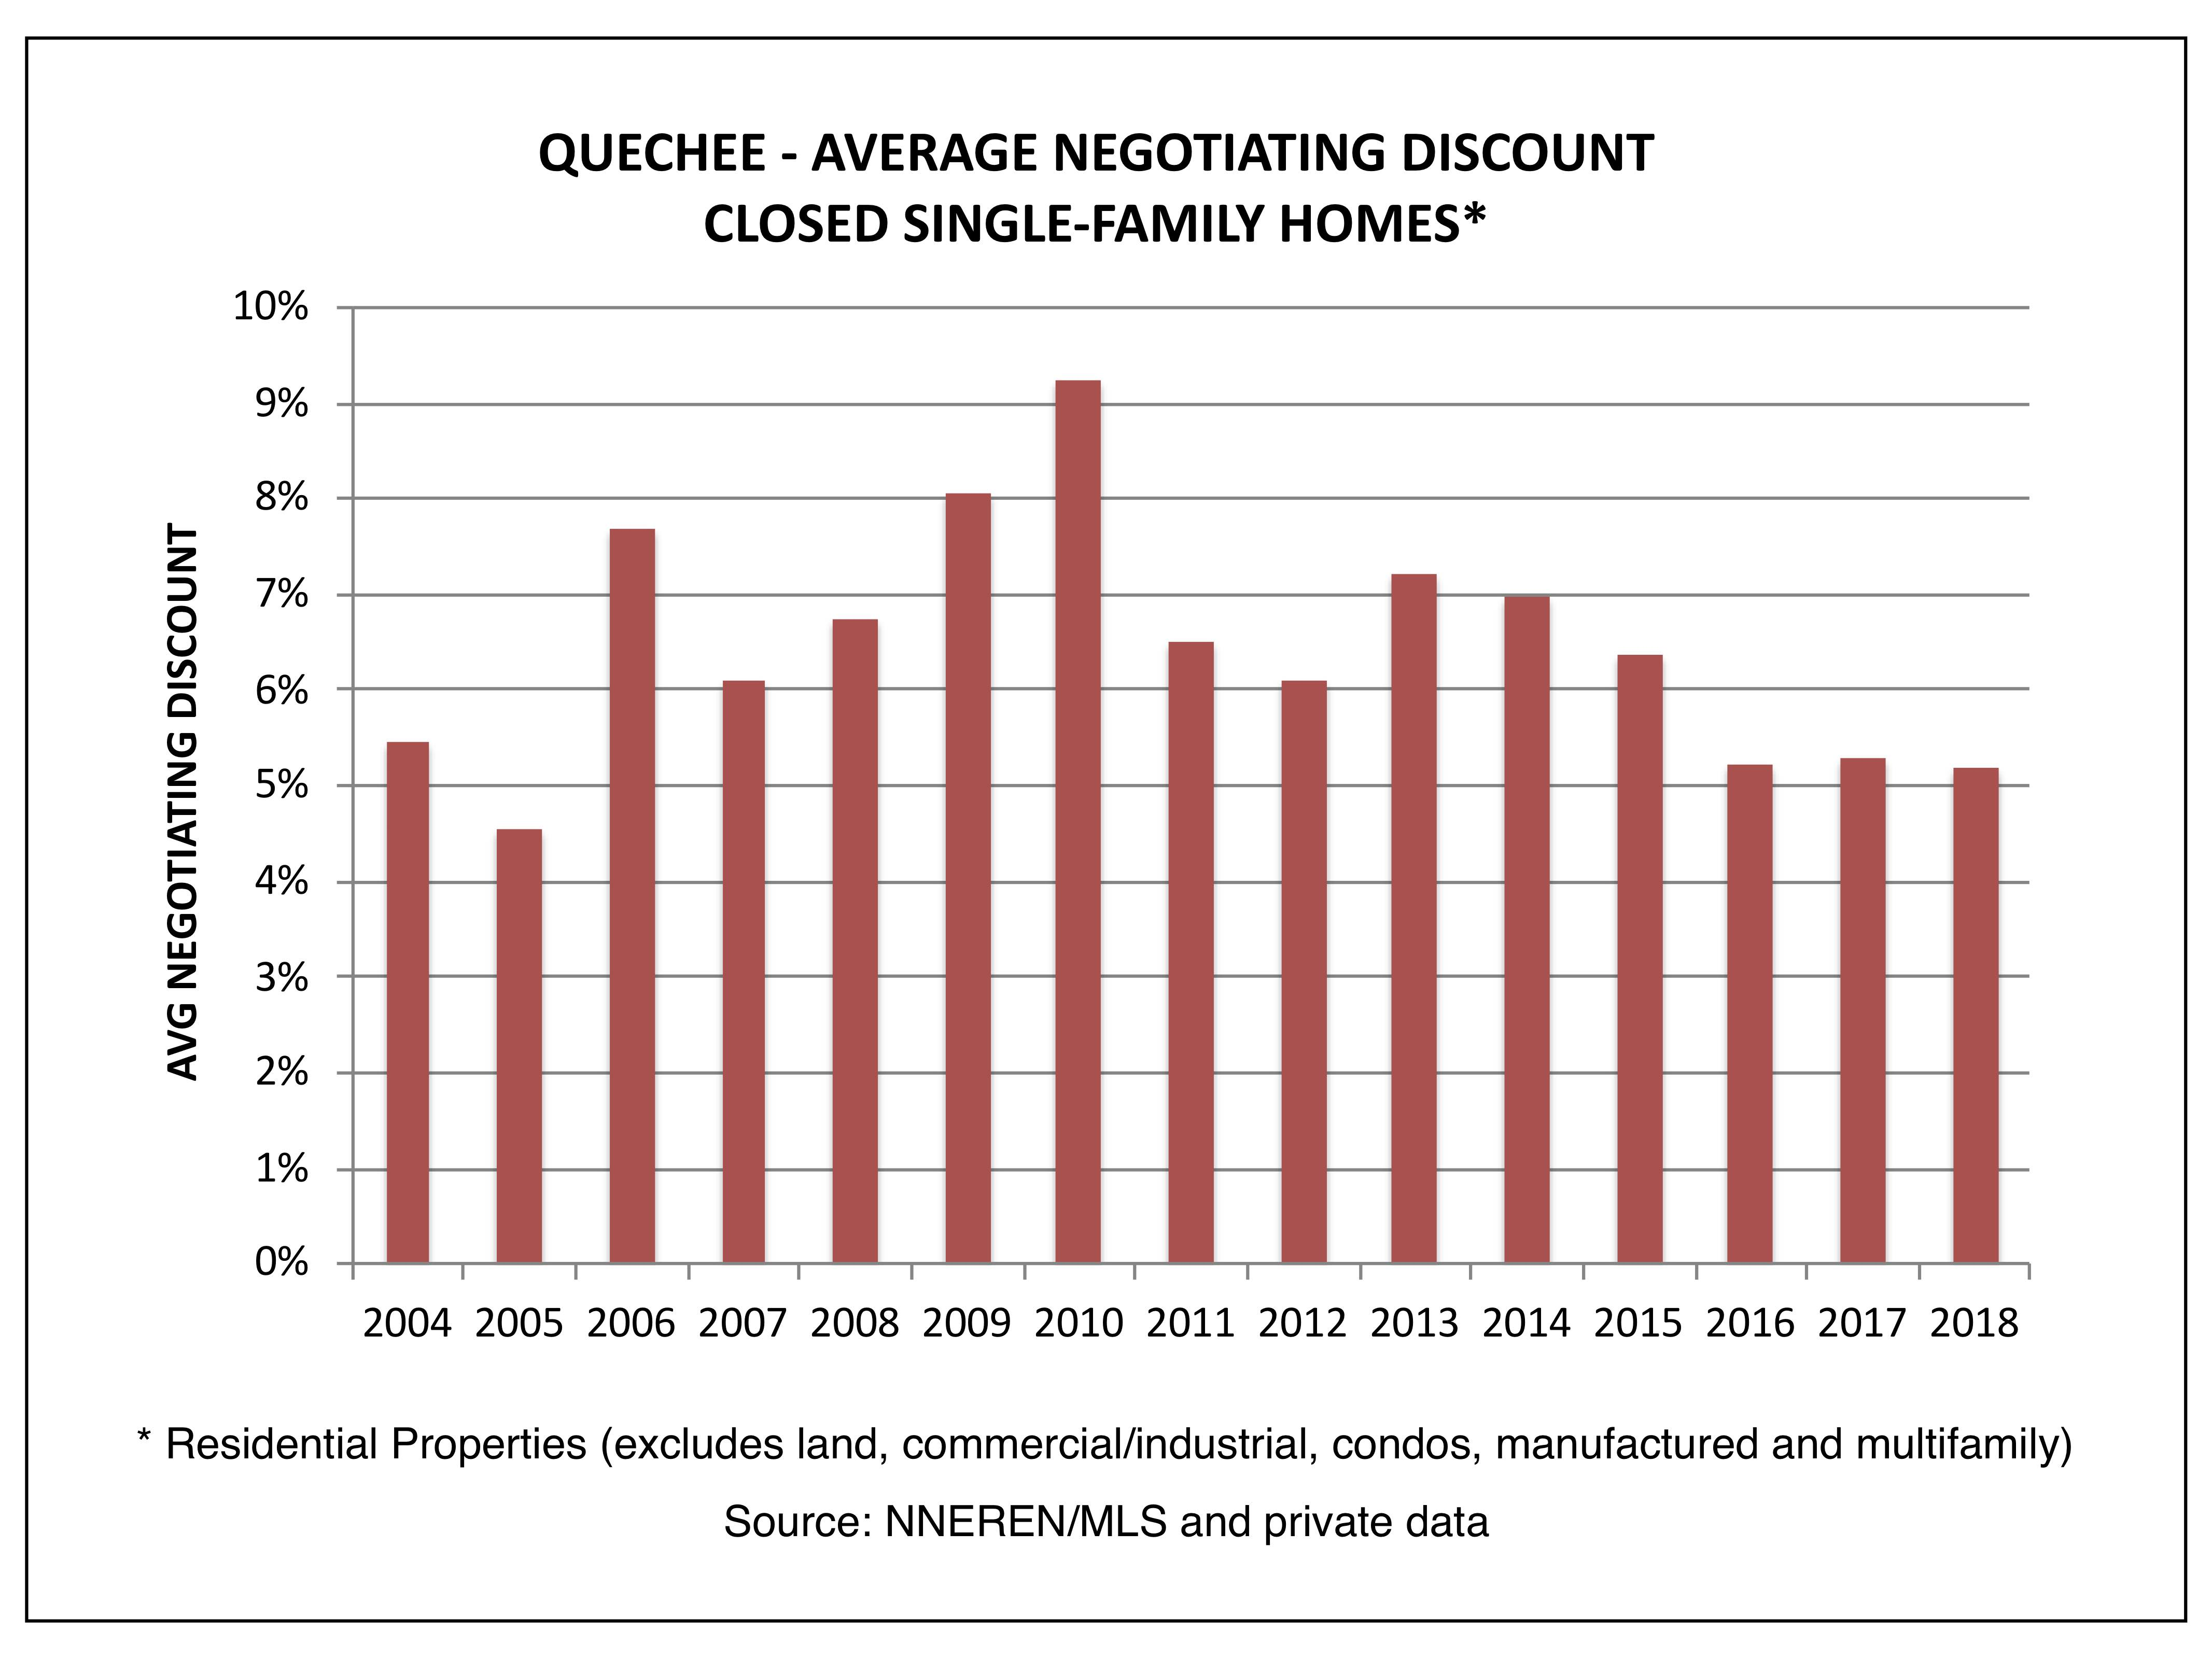 Quechee VT Real Estate - Average Negotiating Discount, Closed Homes